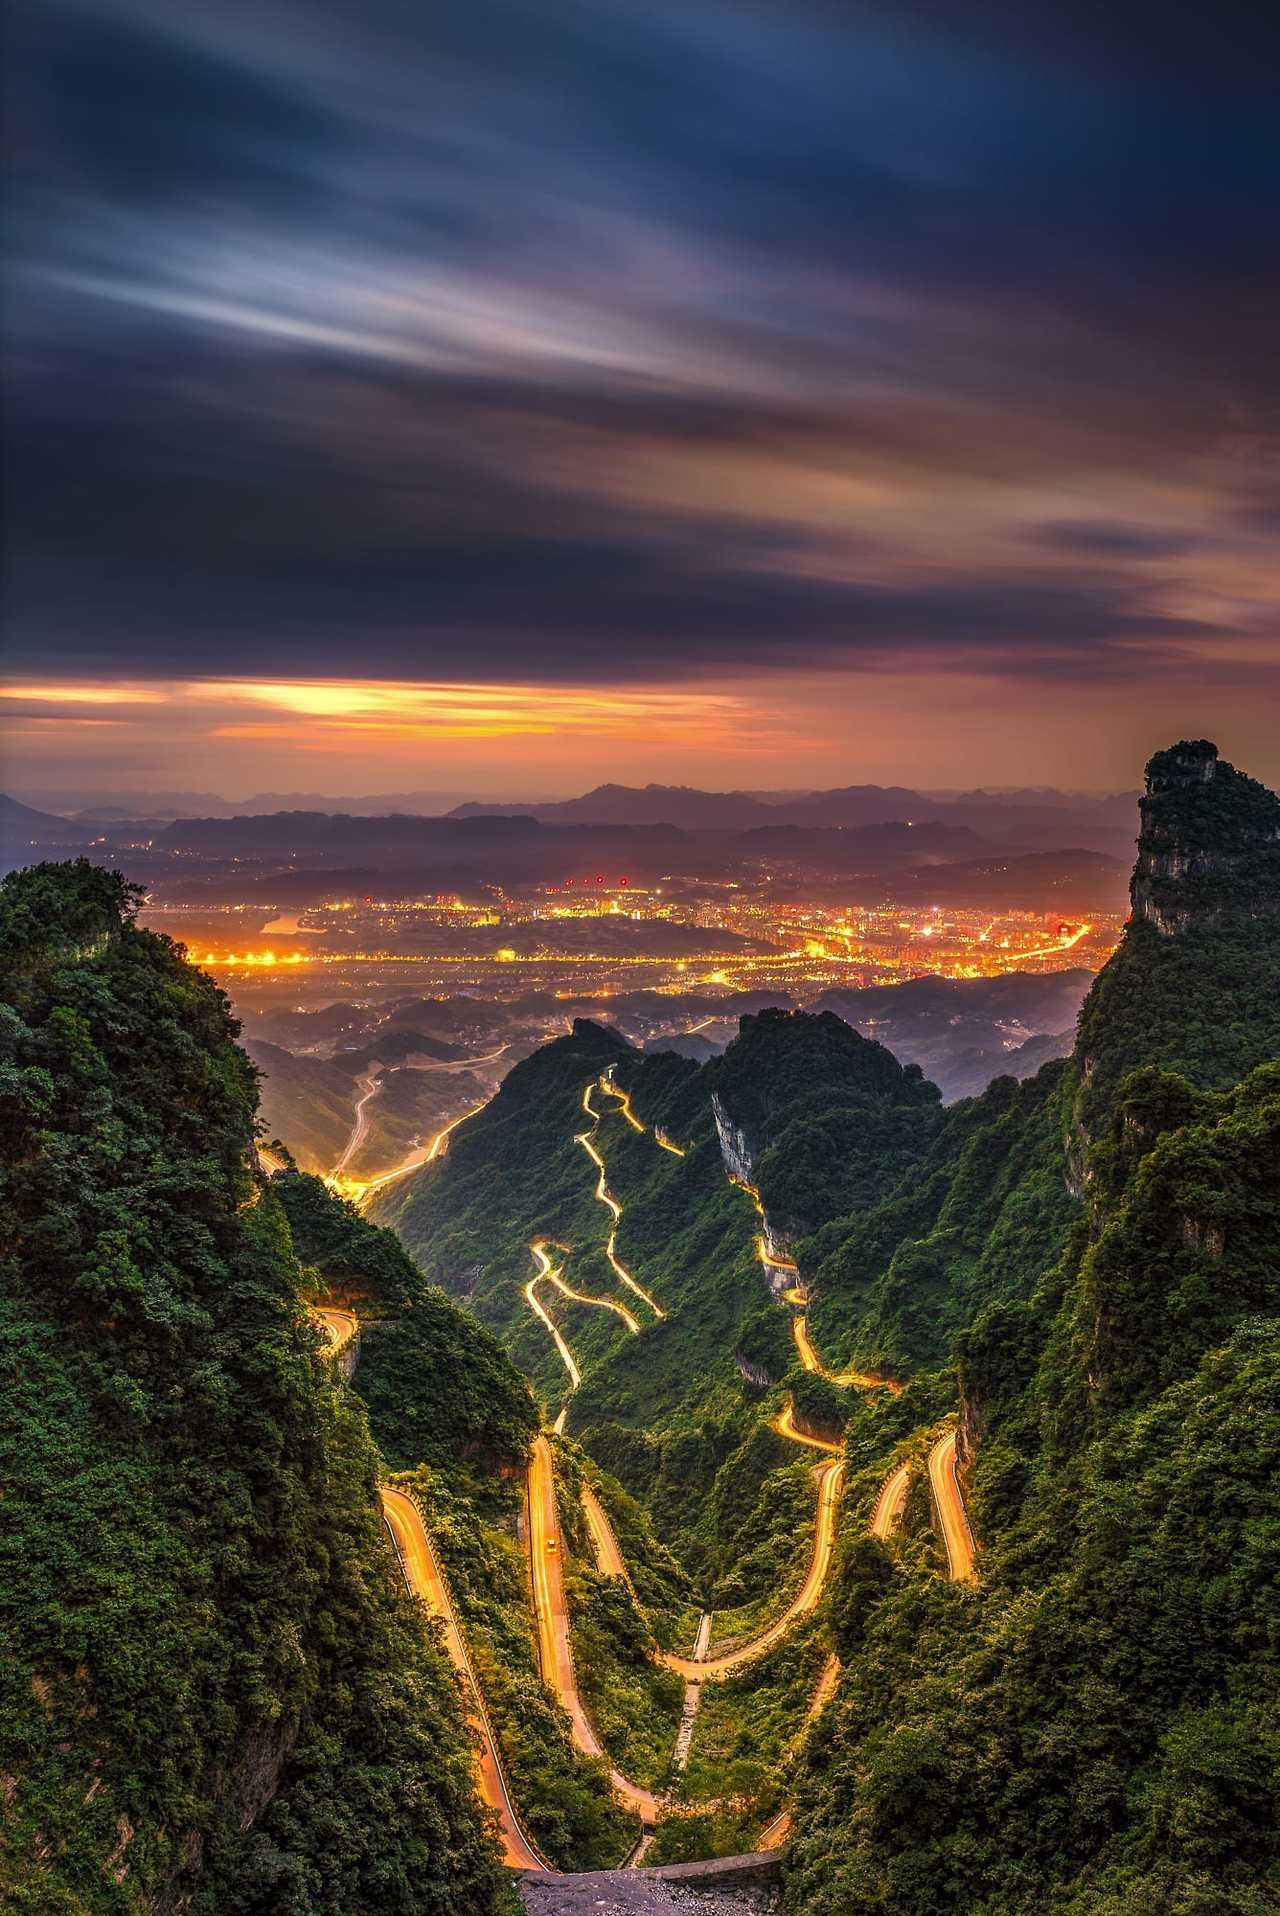 An Amazing shot in The Mountain of Zhangjiajie, a Beautiful place in China Follow @travelgurus for the best Tumblr landscapes